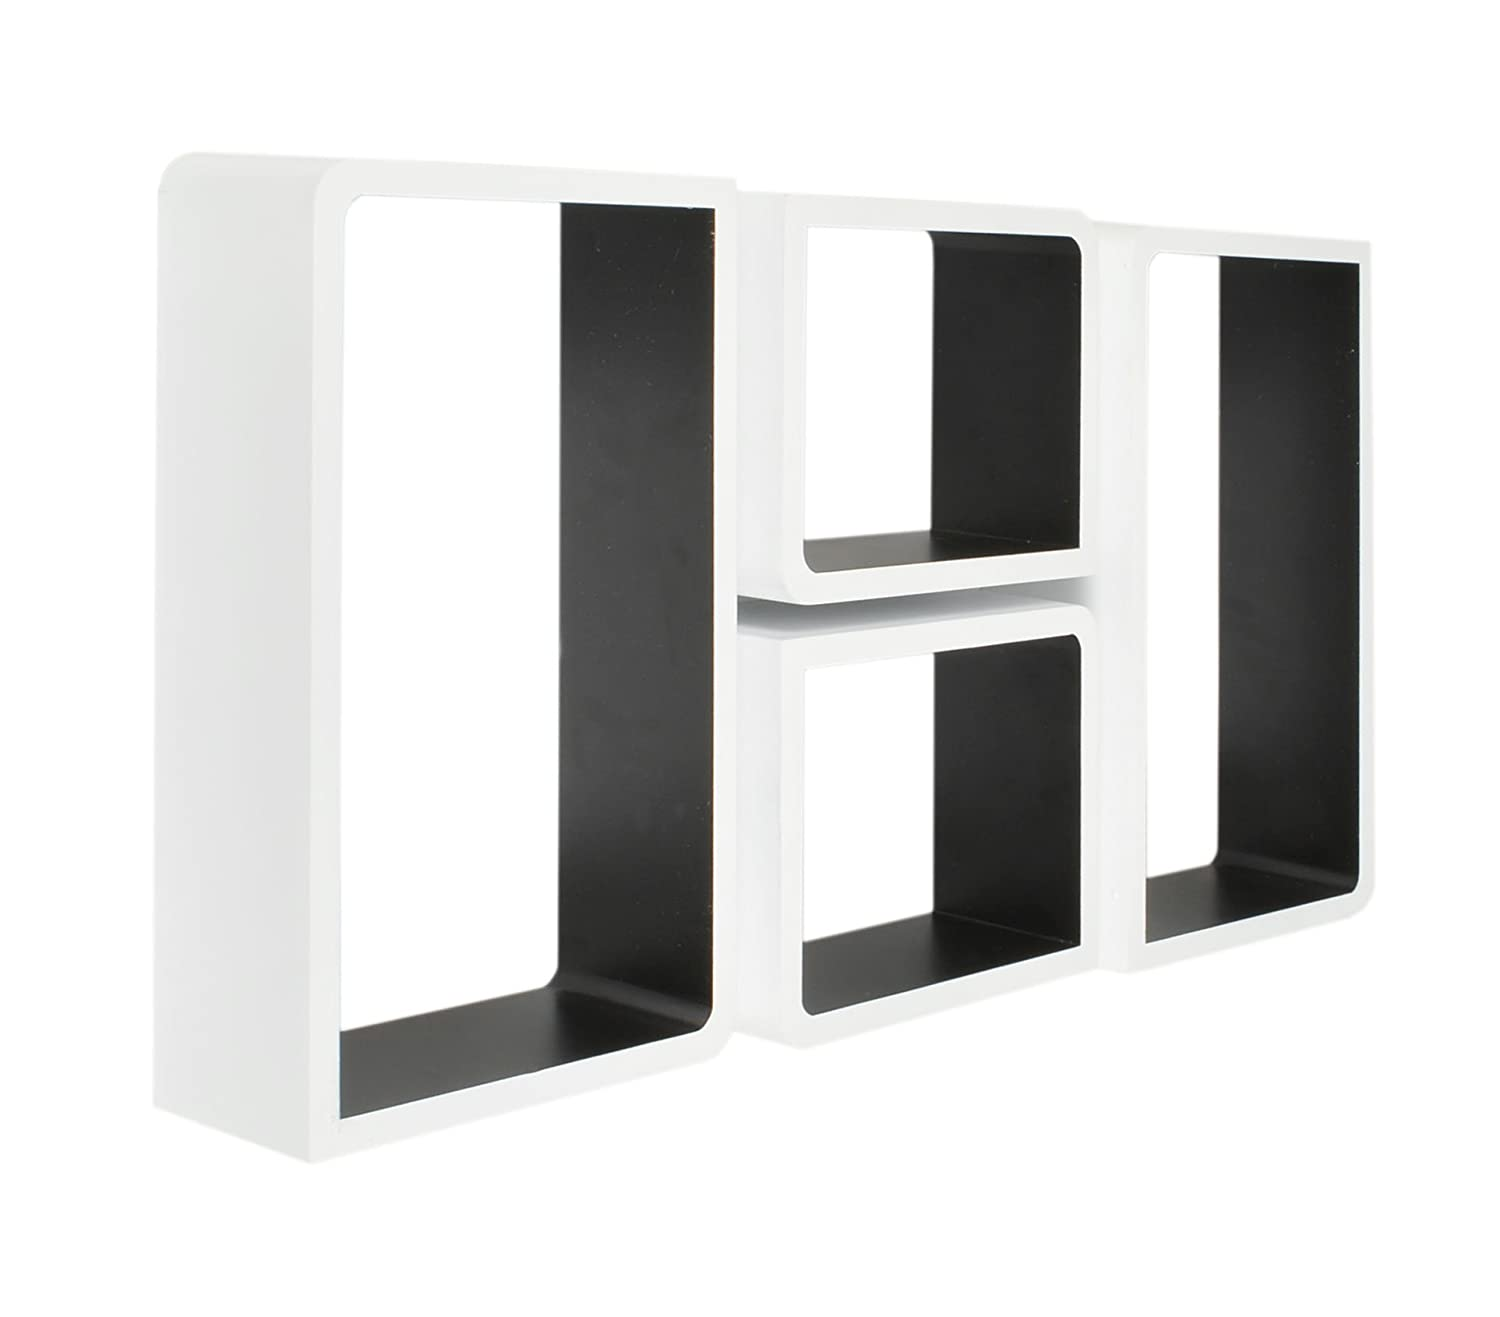 set of  retro design lounge cube shelves white black  retro  - set of  retro design lounge cube shelves white black  retrodesignseventies  wall mounted  oblong   cubes with rounded and  cubeswith rectangular